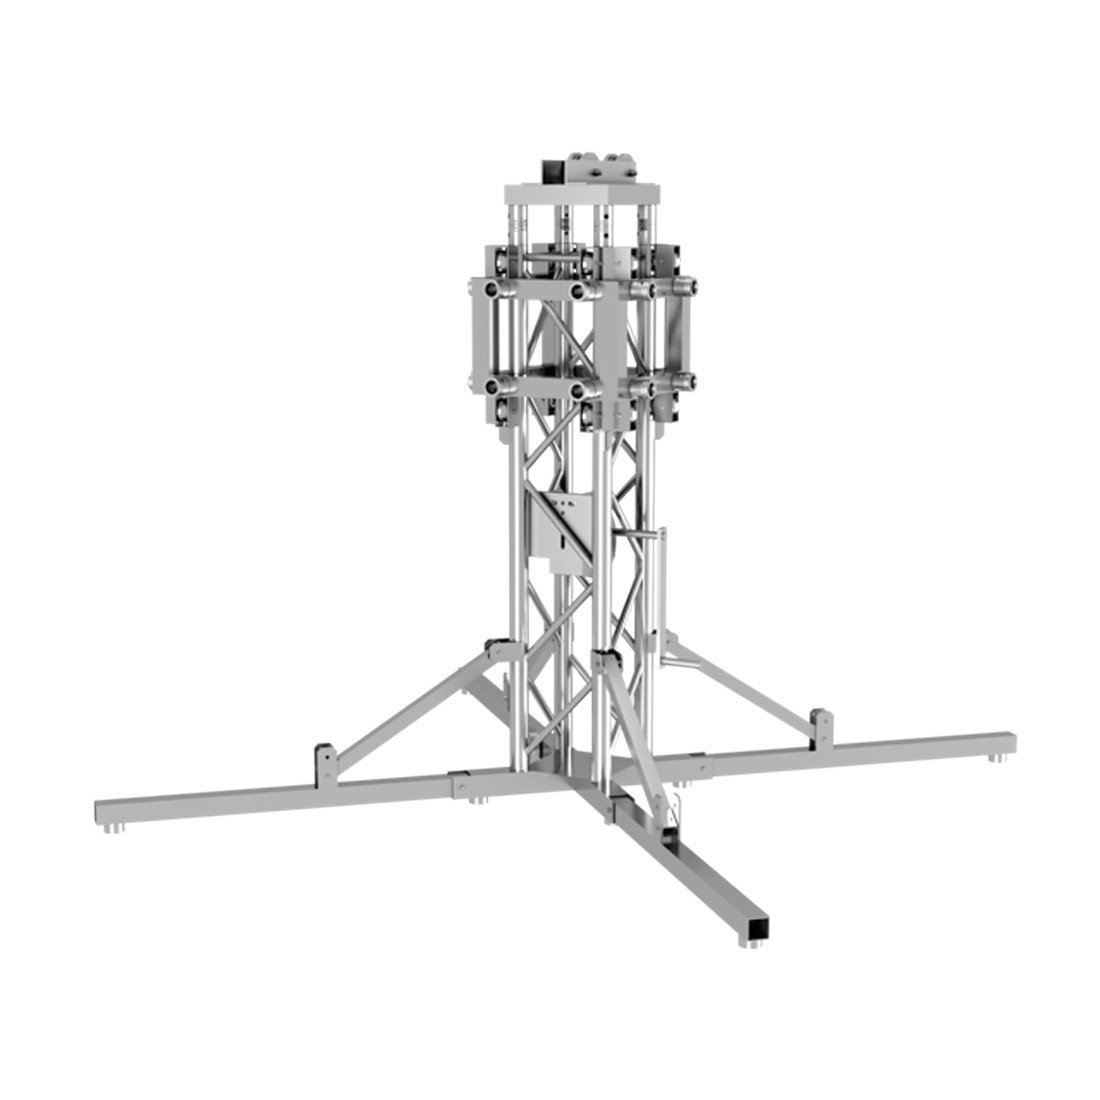 DURATRUSS DT 34-Flex Tower